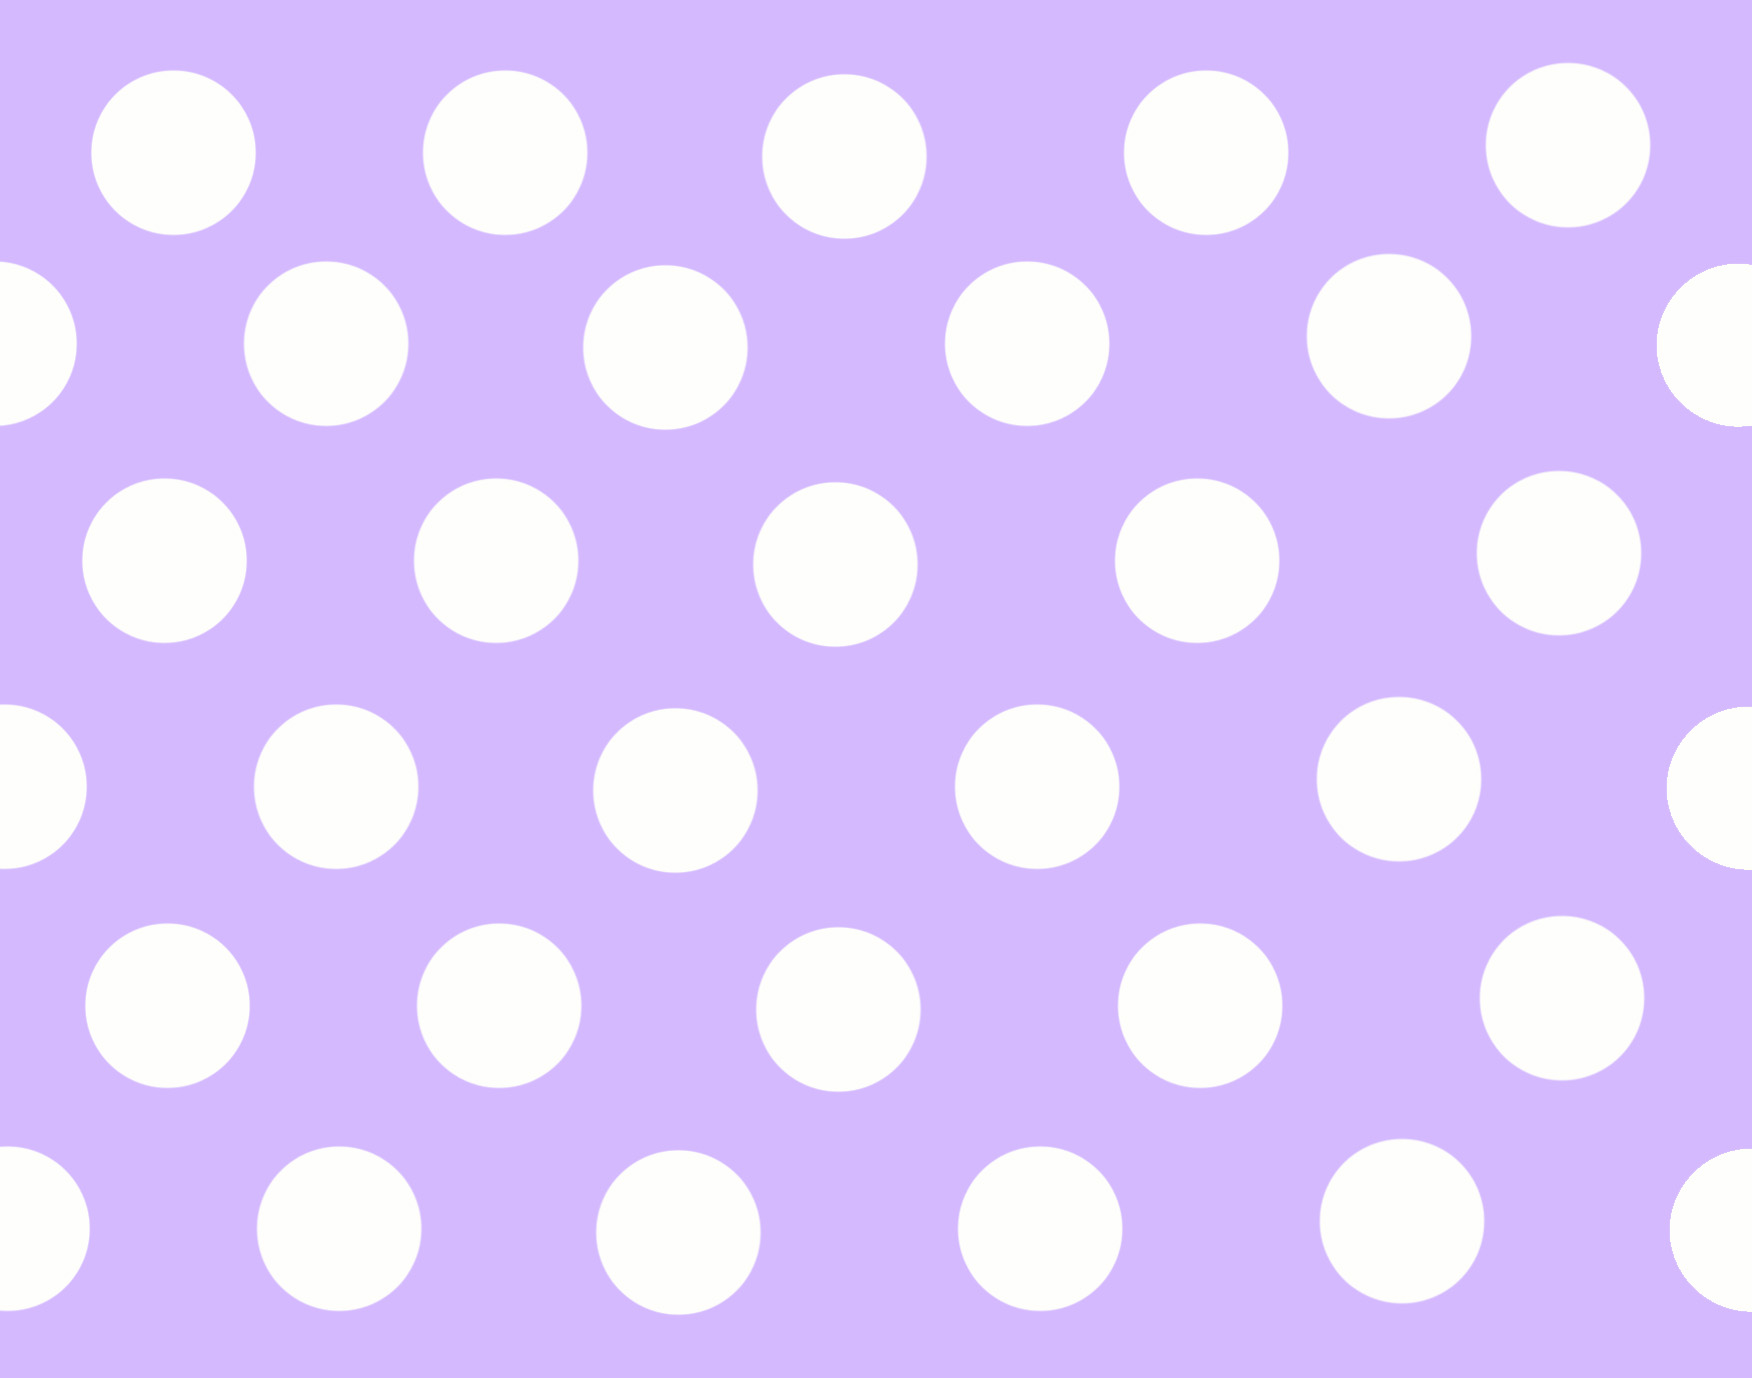 Purple And White Polka Dot Wallpaper